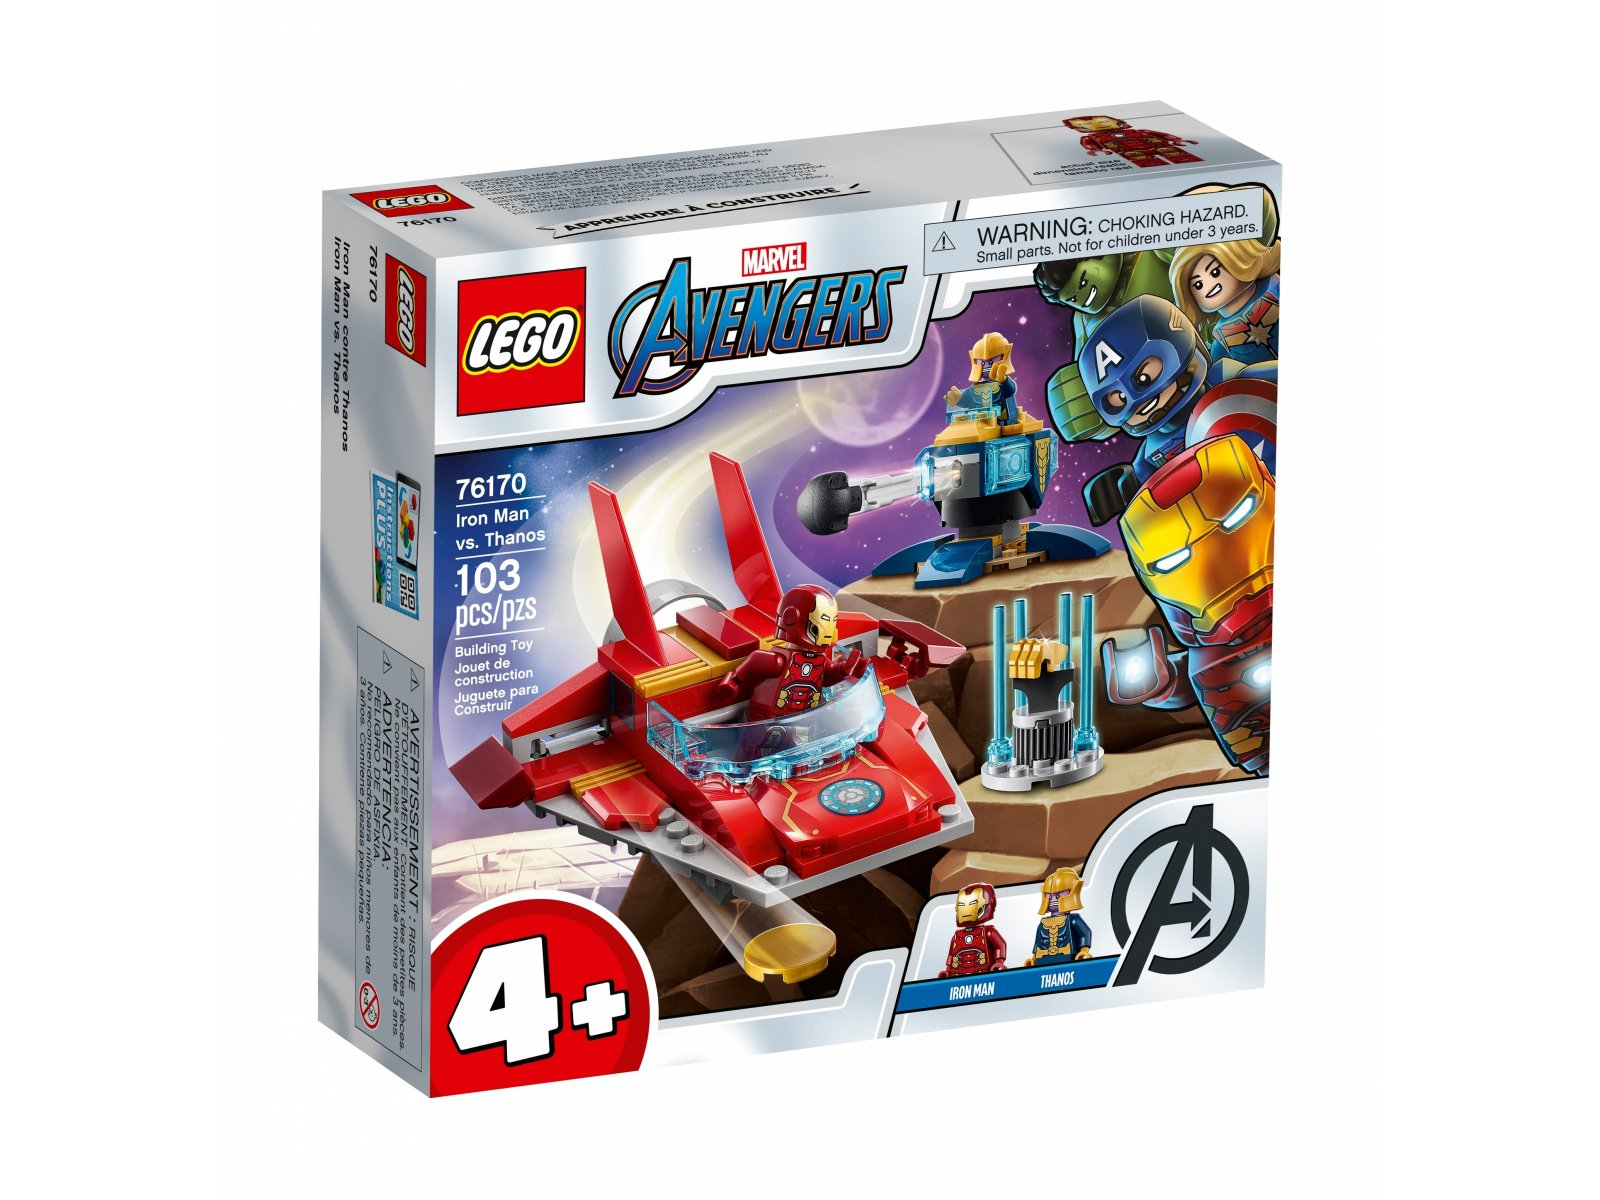 LEGO Marvel Avengers 76170 Iron Man kontra Thanos